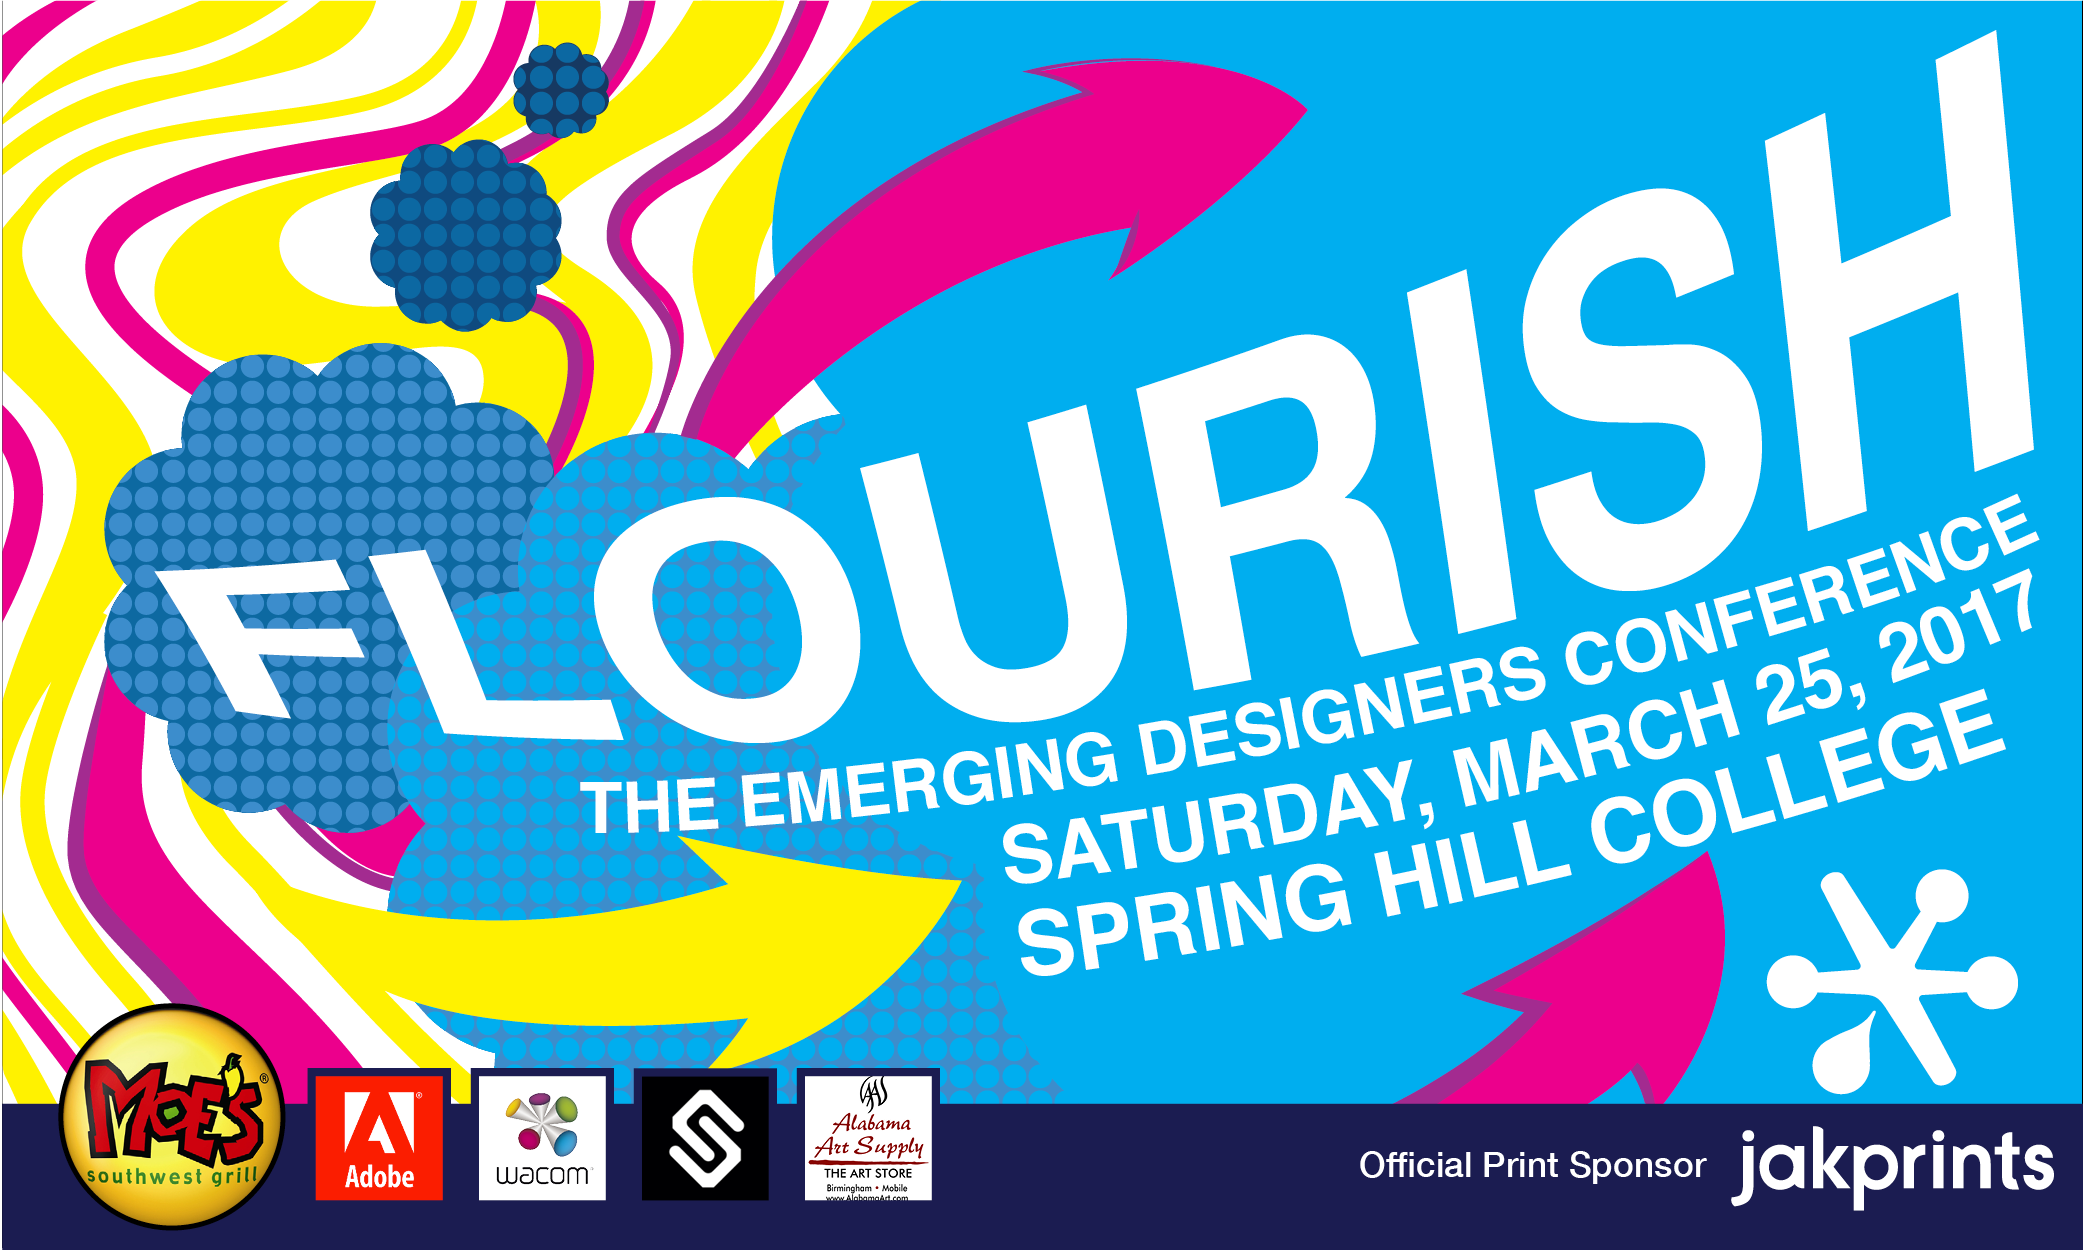 Junior And Senior Level Design Students Emerging Talent Are Invited To Attend Flourish The Designers Conference Hosted By AIGA Mobile